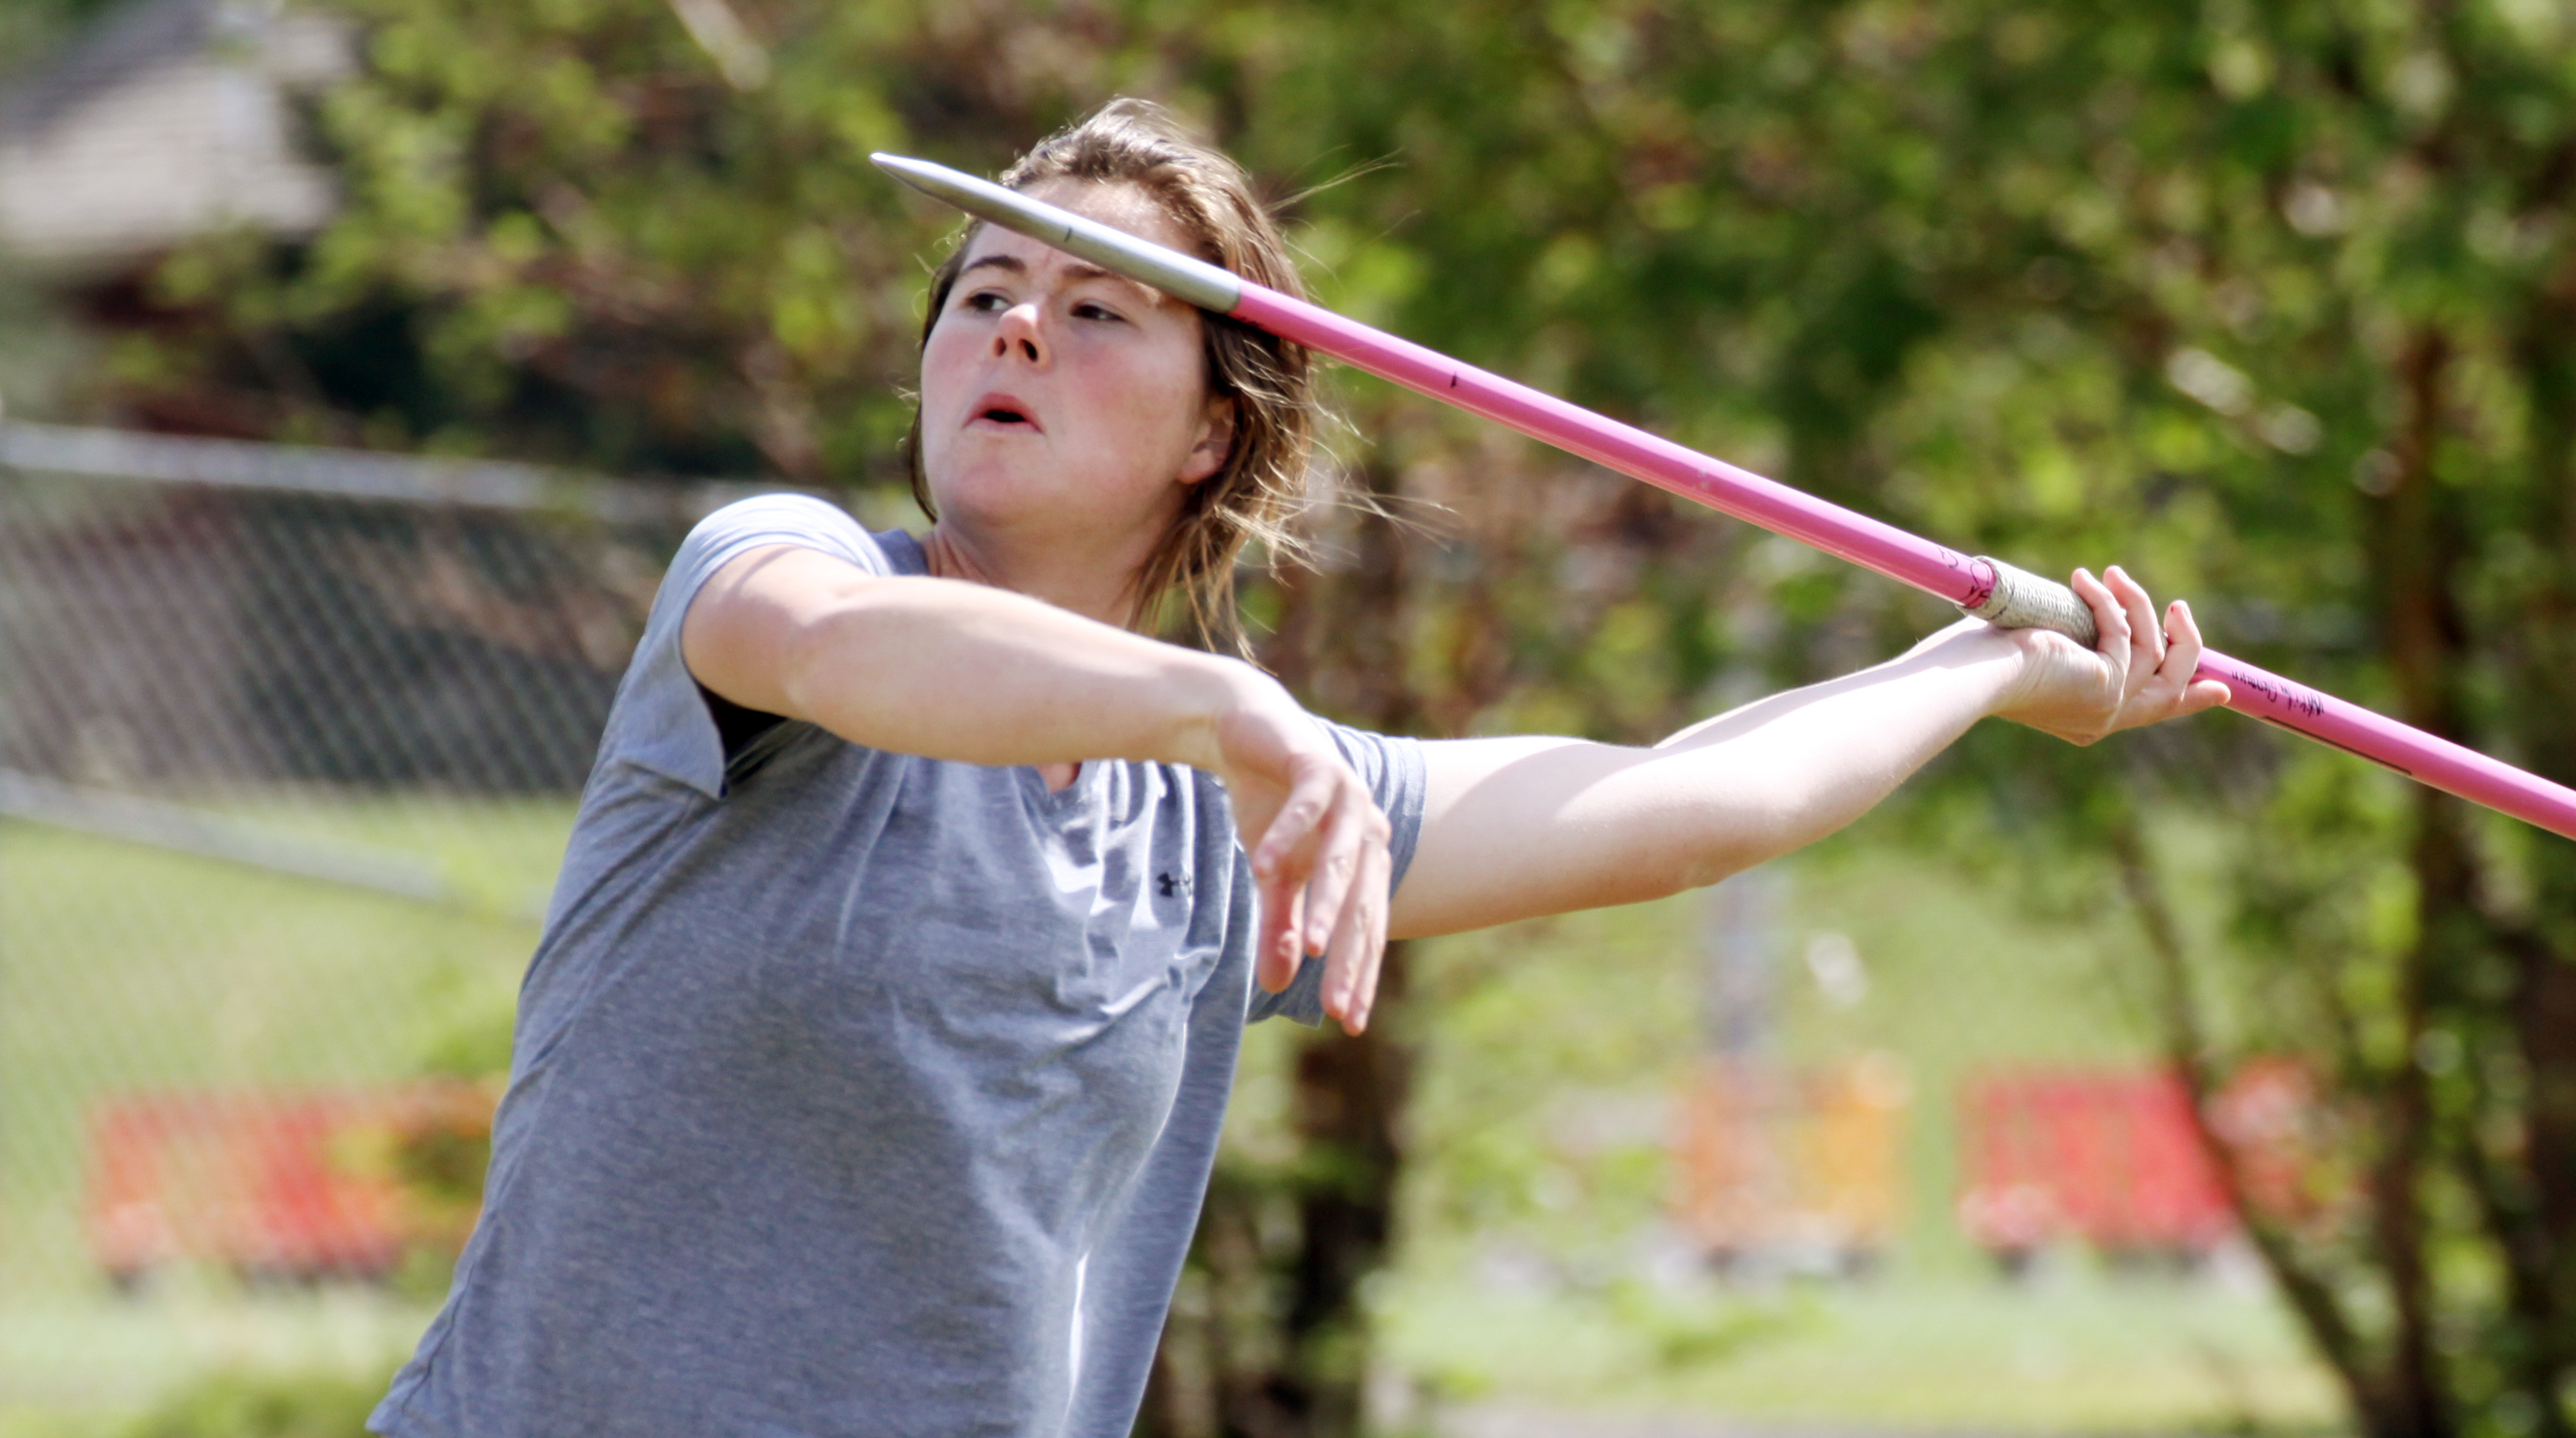 Megan Glasmann s throw of 156 feet, three inches at the Davis Invitational on April 27 set a new Utah state record for javelin throwers of all divisions. Tyler Cobb/The Park Record